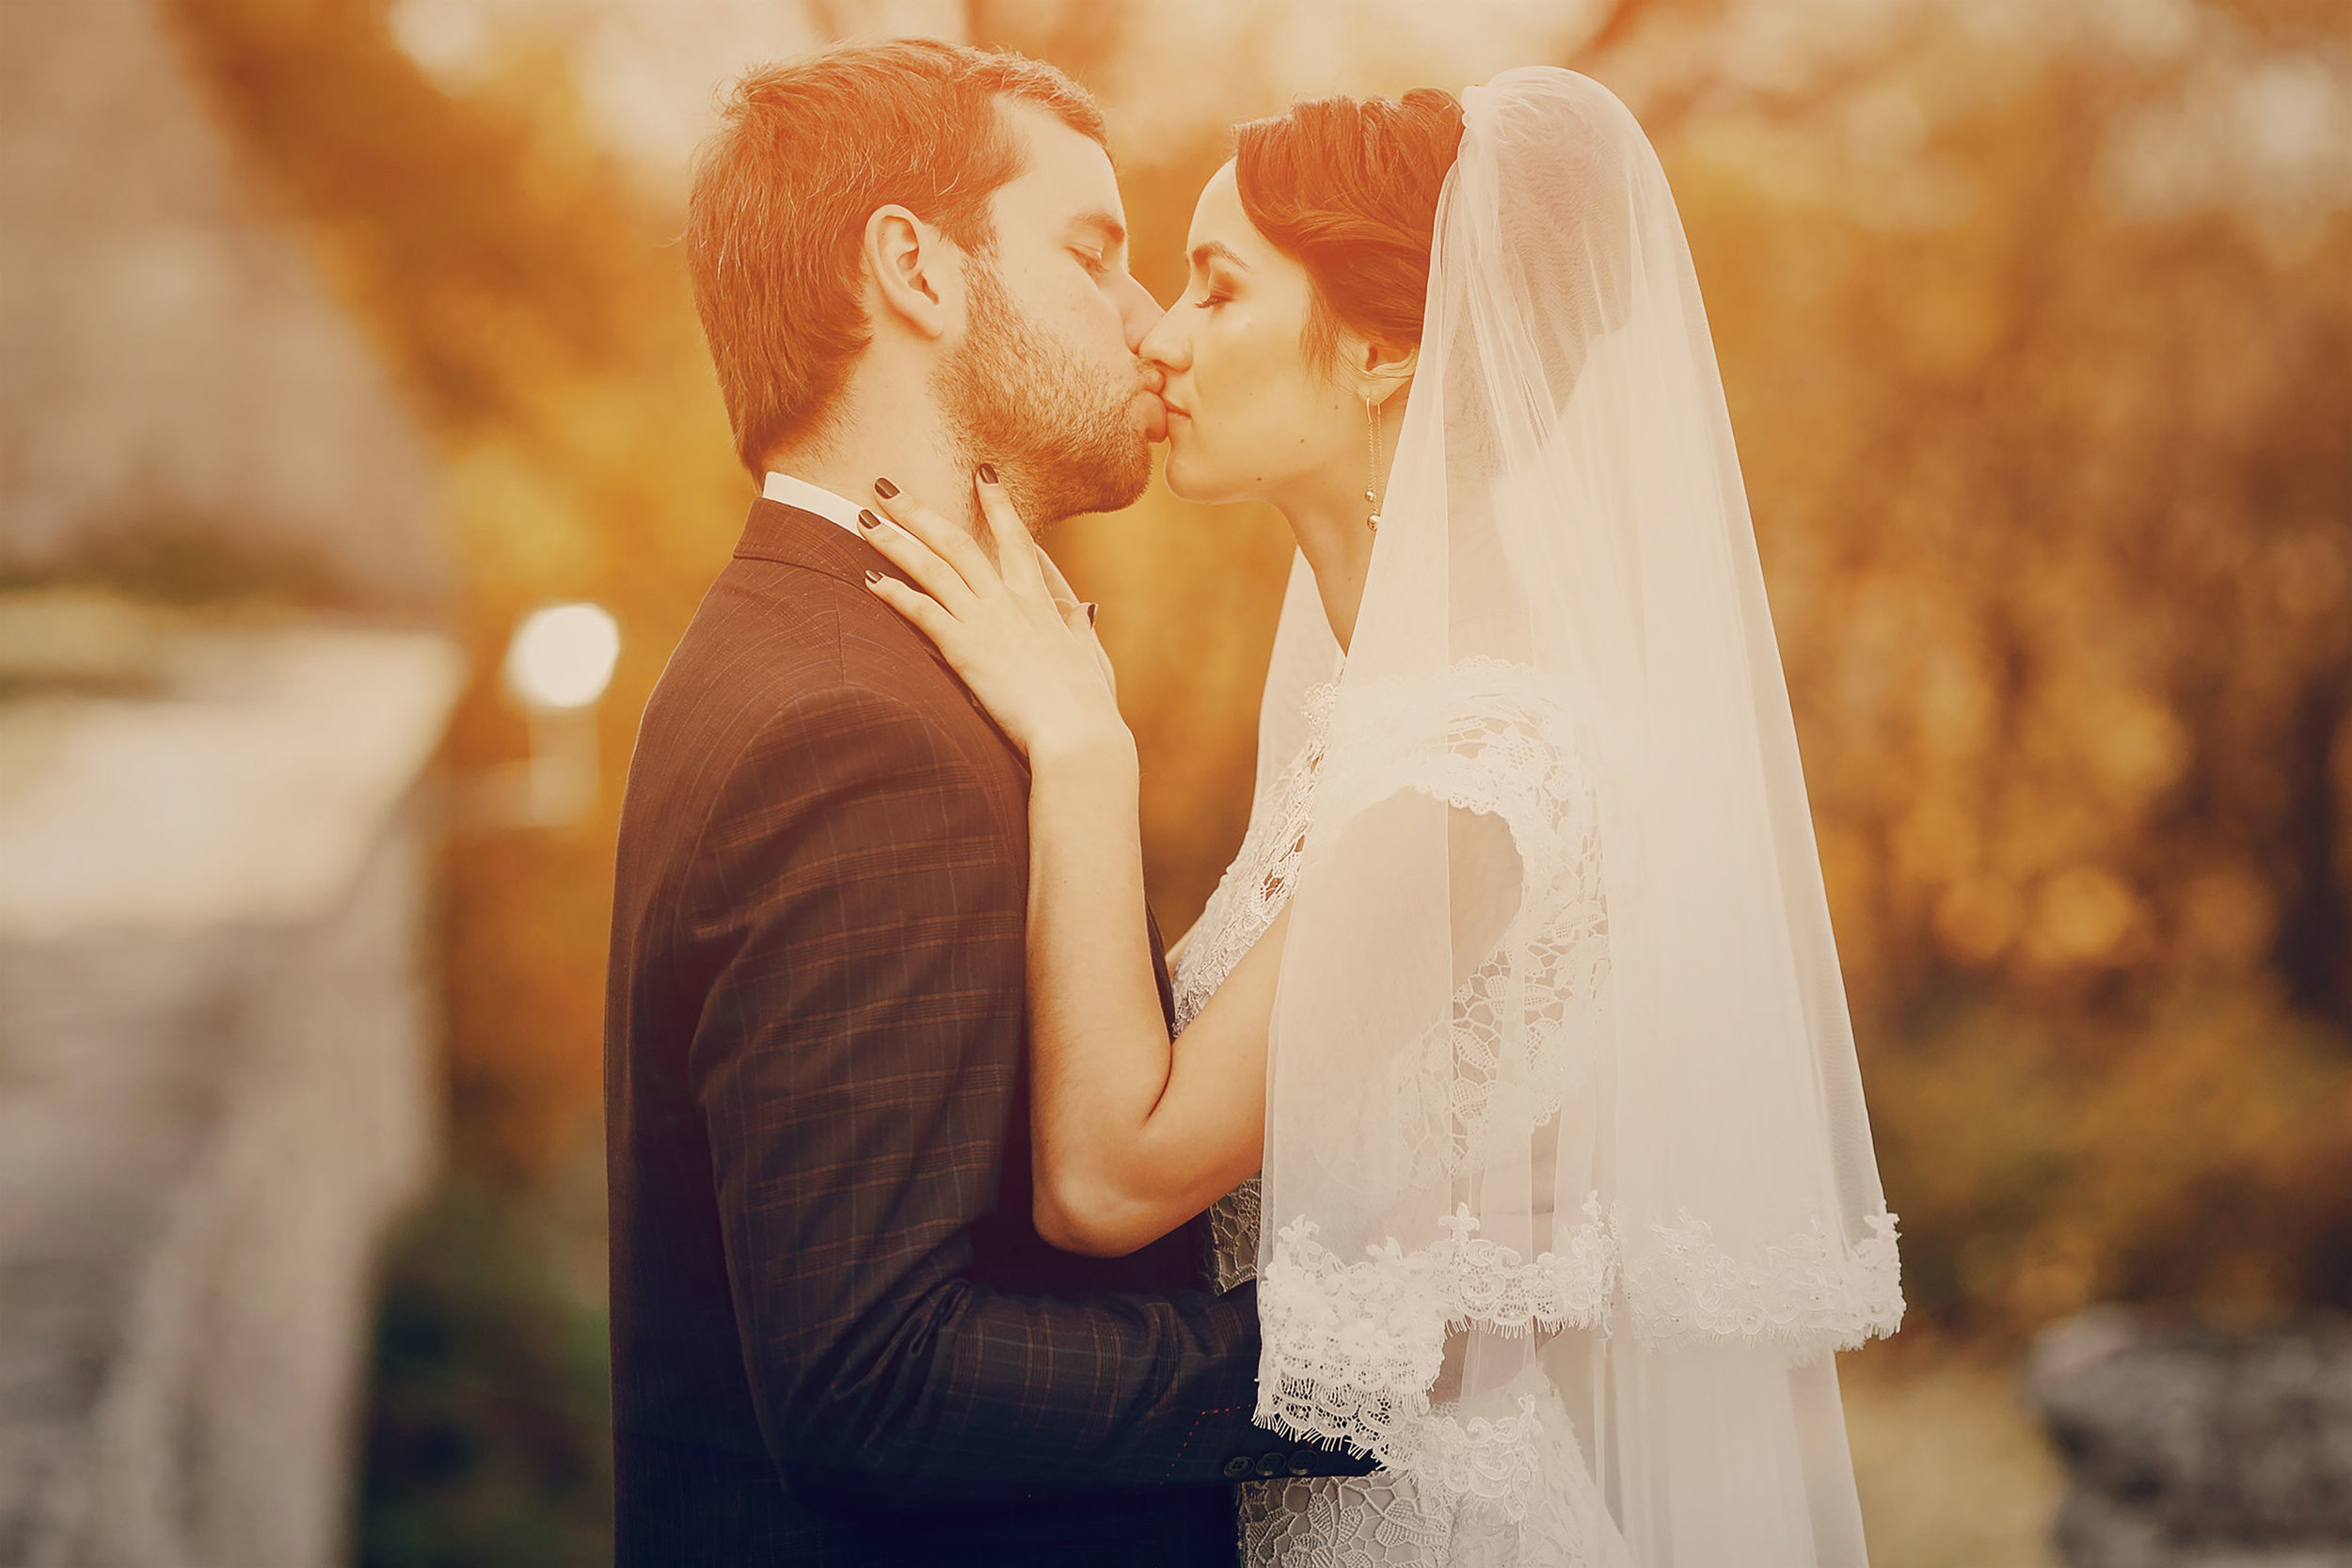 45258244 - happy couple whose wedding photo shoot in a golden autumn